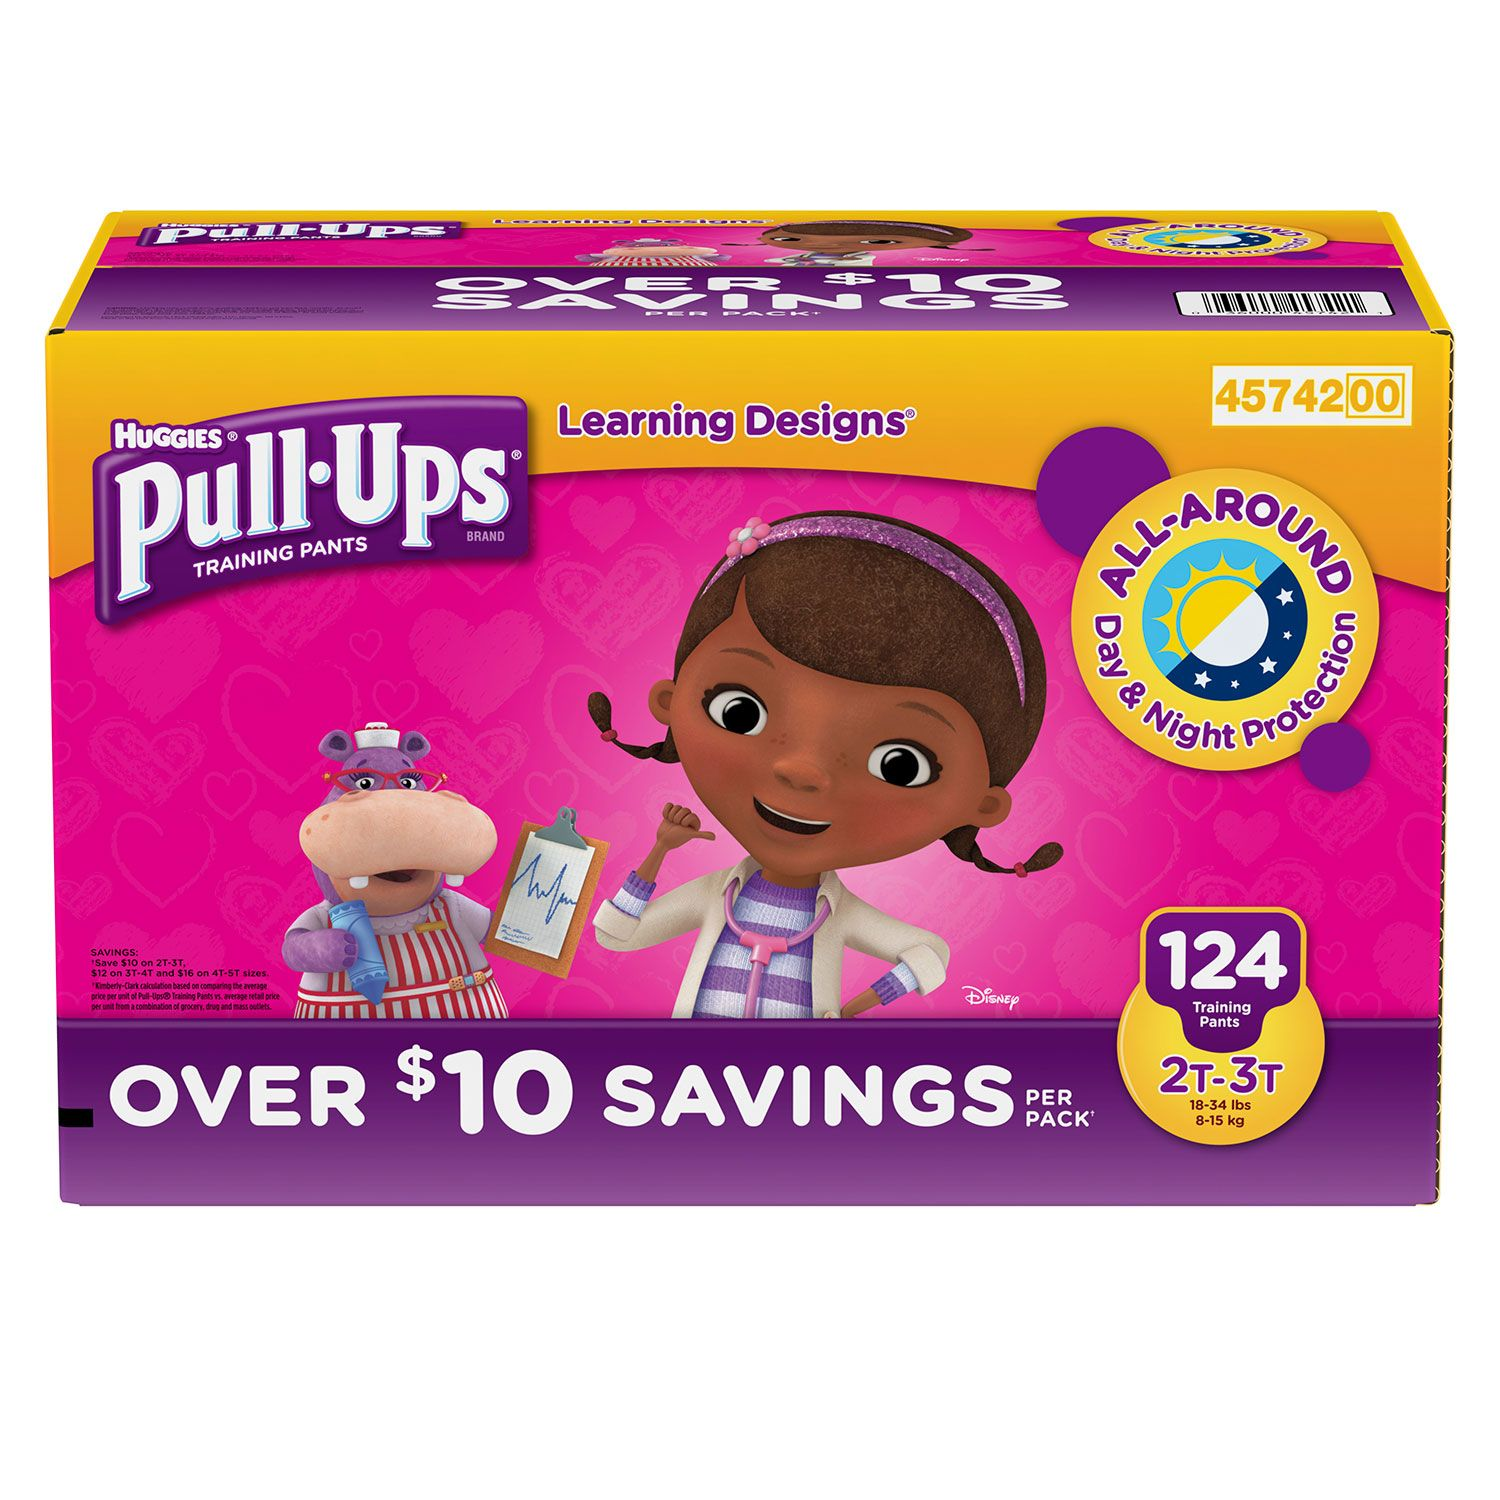 Huggies Pull-ups Traning Pants for Girls (Size M, 2T - 3T, 124 ct.)